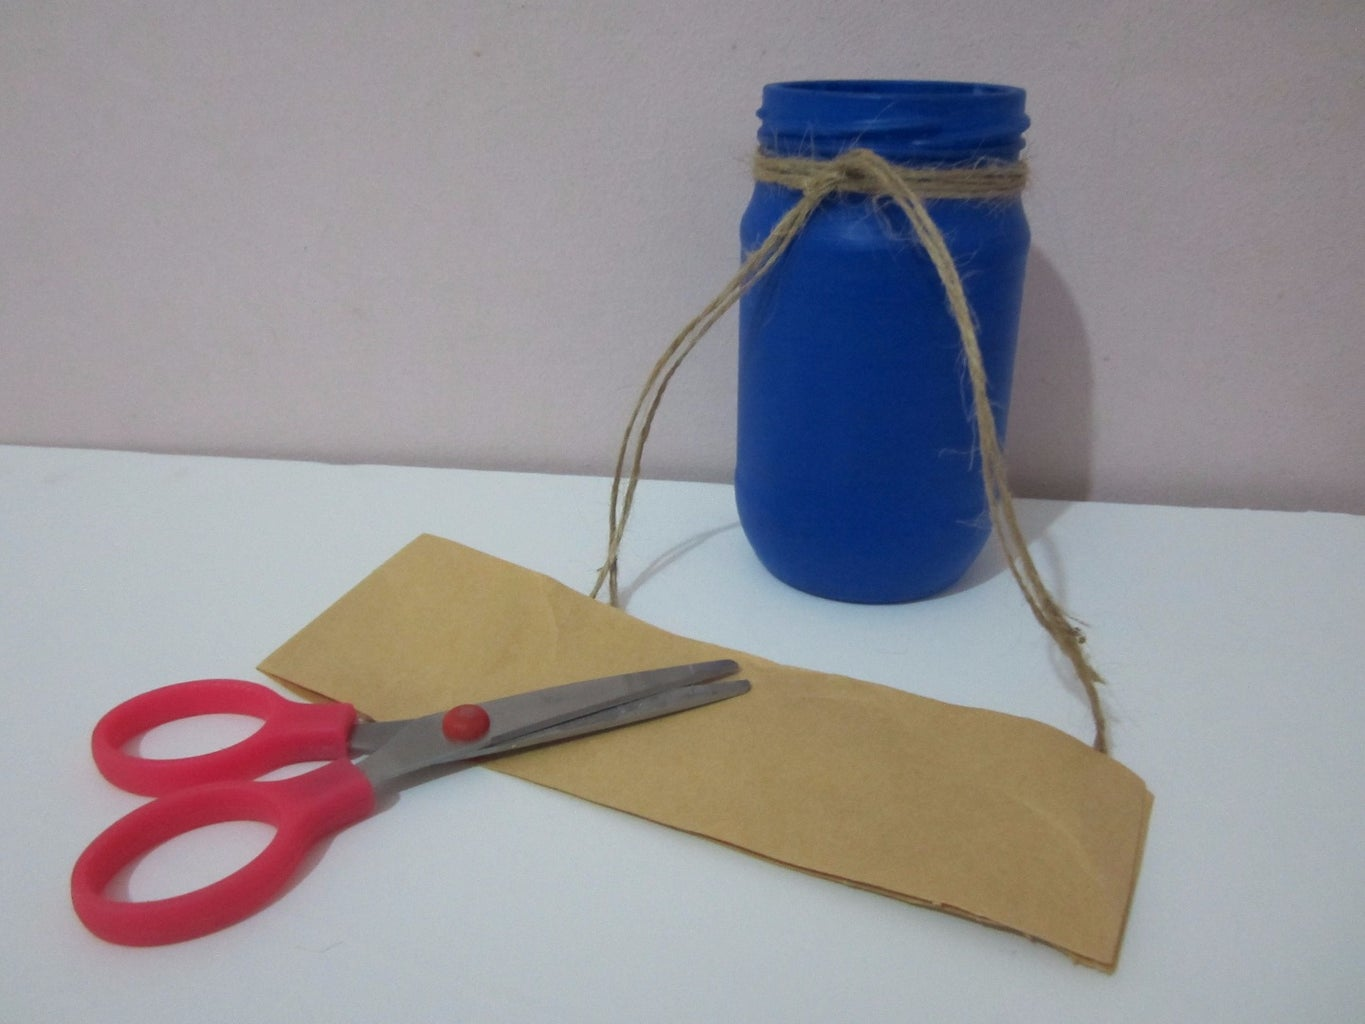 Cut a Card From the Shopping Bag